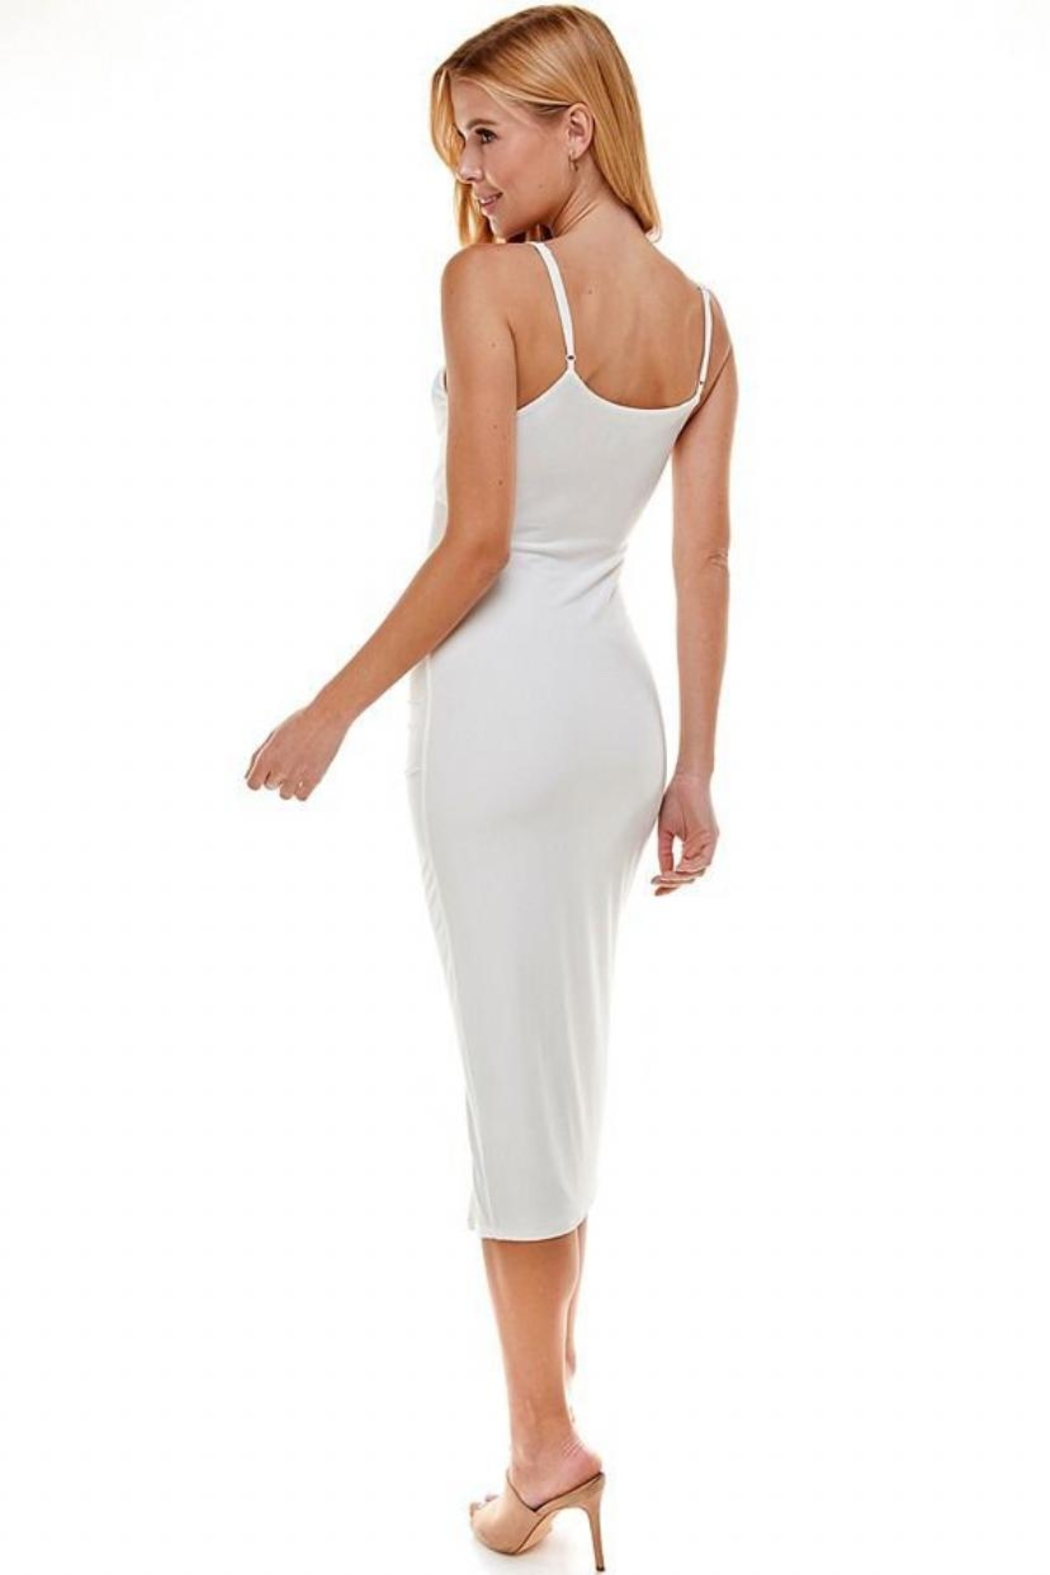 ACOA Cut-Out Ruched Dress - Front Full Image